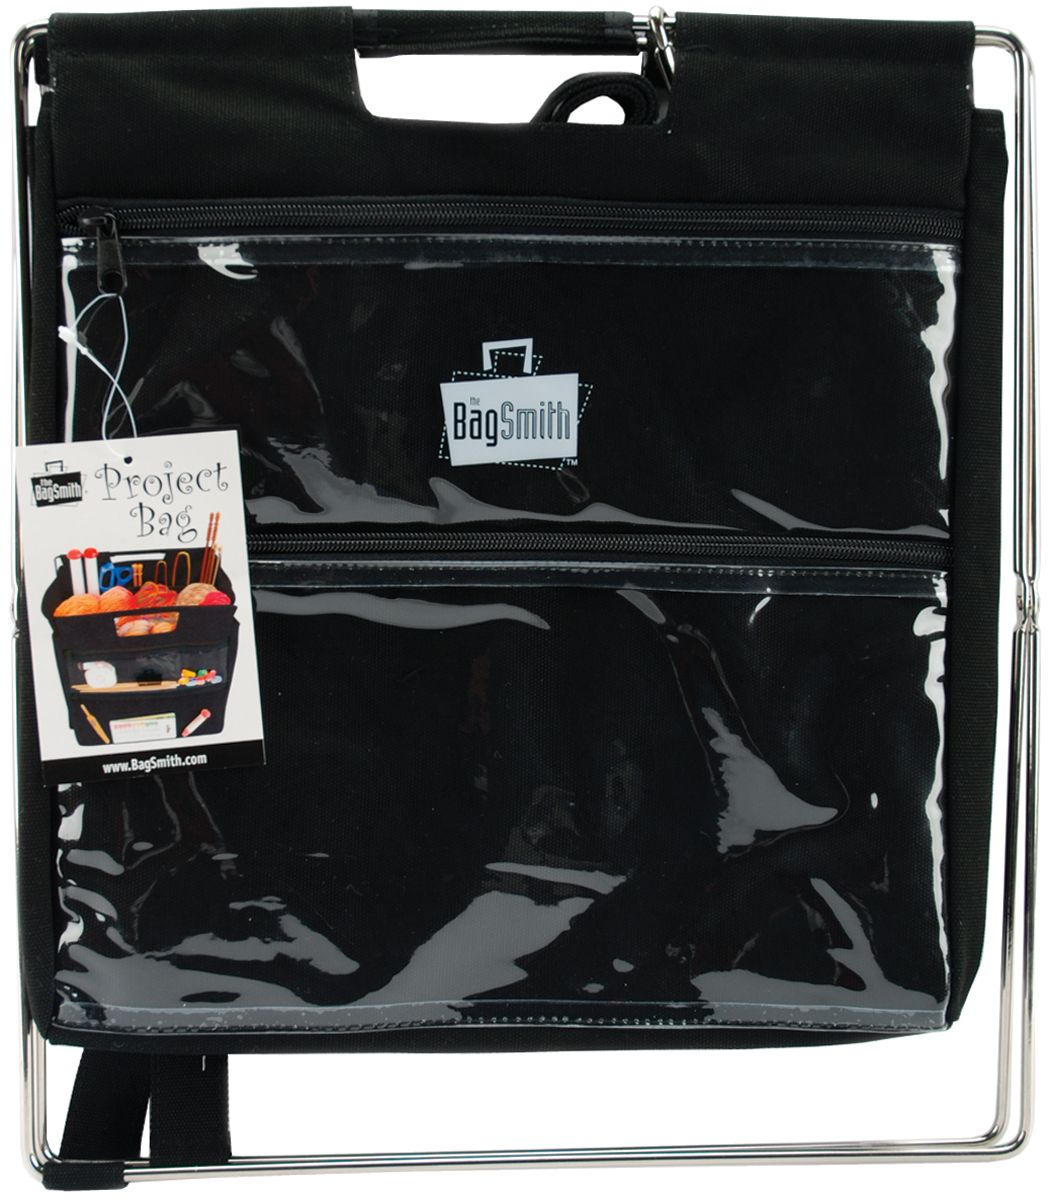 The Bagsmith Bagsmith Black Project Bag Knitting Craft Collapsible Storage Stand PartNumber: 021V005415730000P